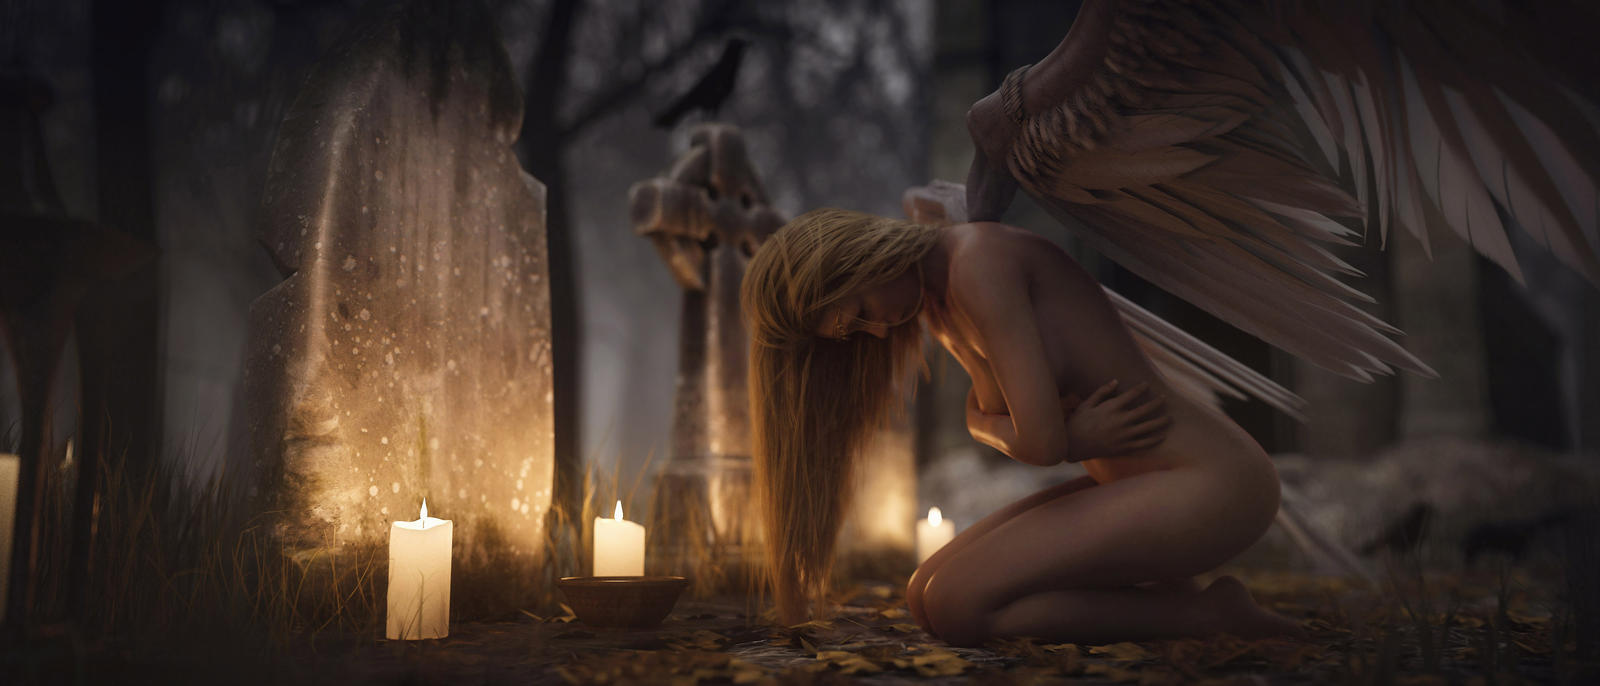 [DAZ3D] - When She Cries by PSK-Photo